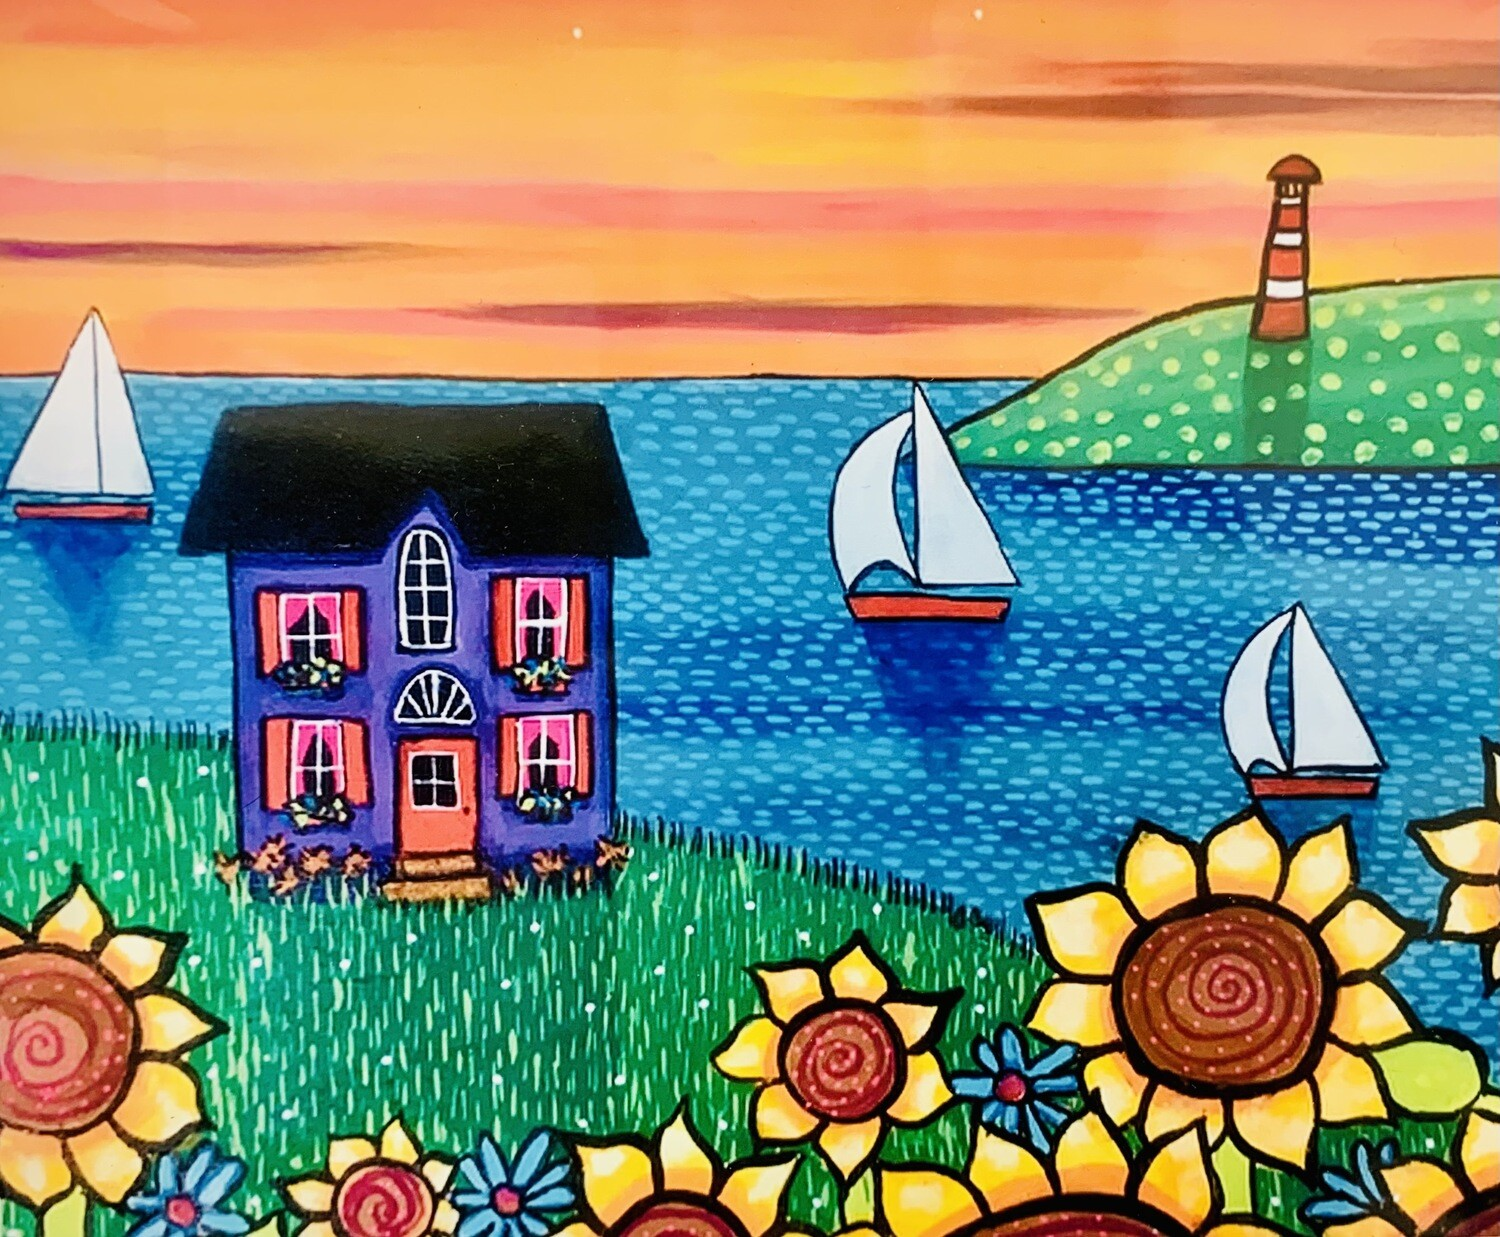 Purple House by the Sea - Shelagh Duffett